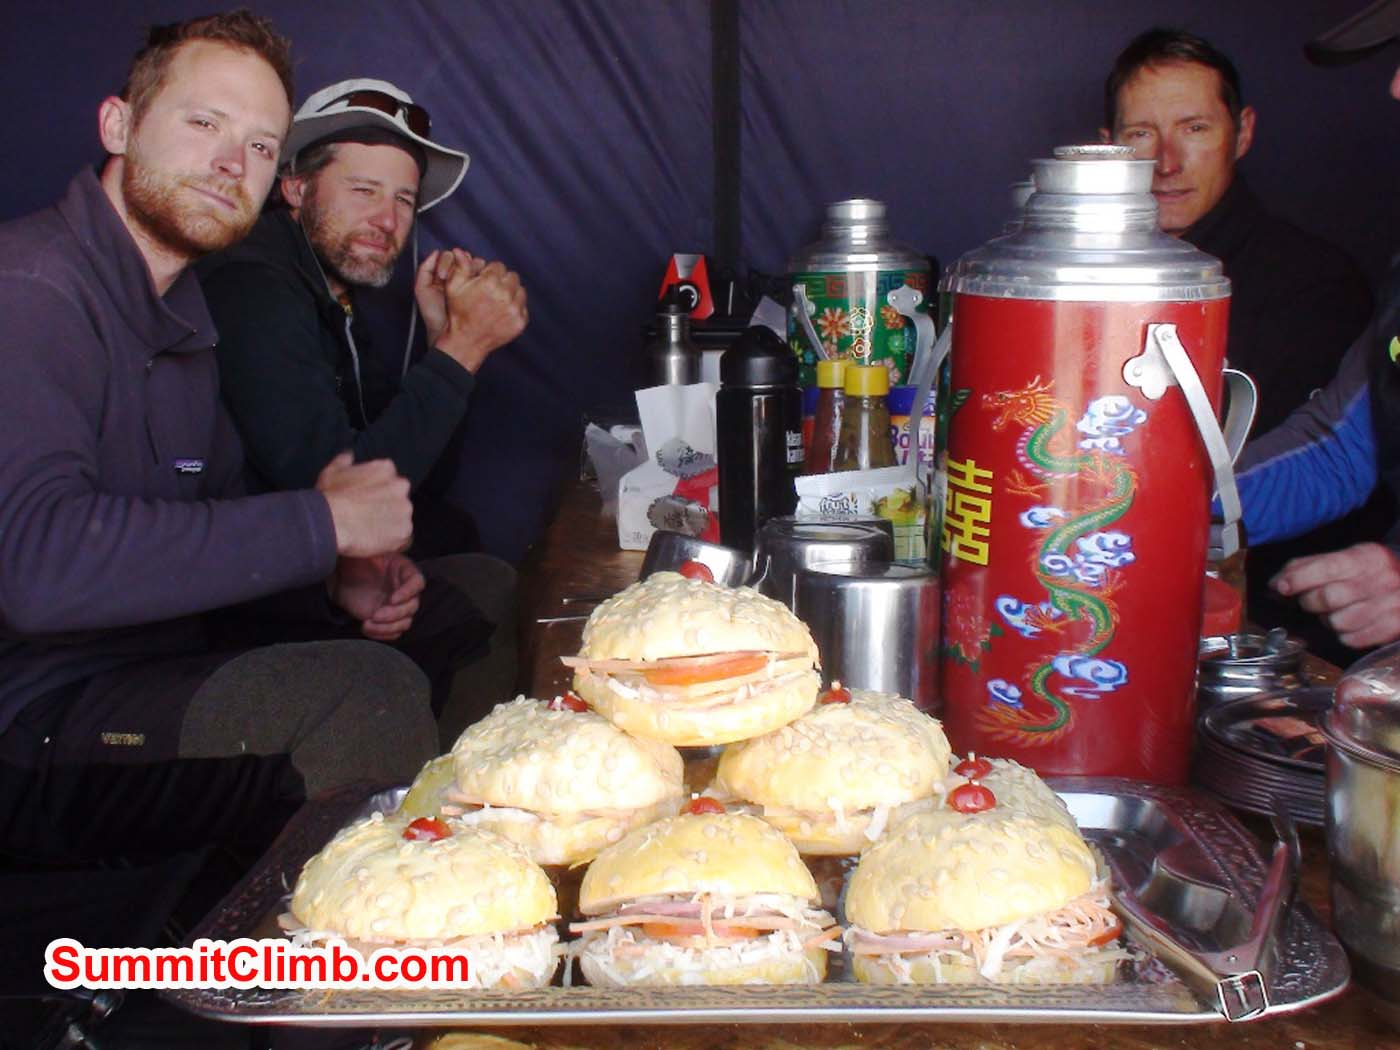 Delicious sandwiches made by our basecamp chef. Photo by Angel Armesto